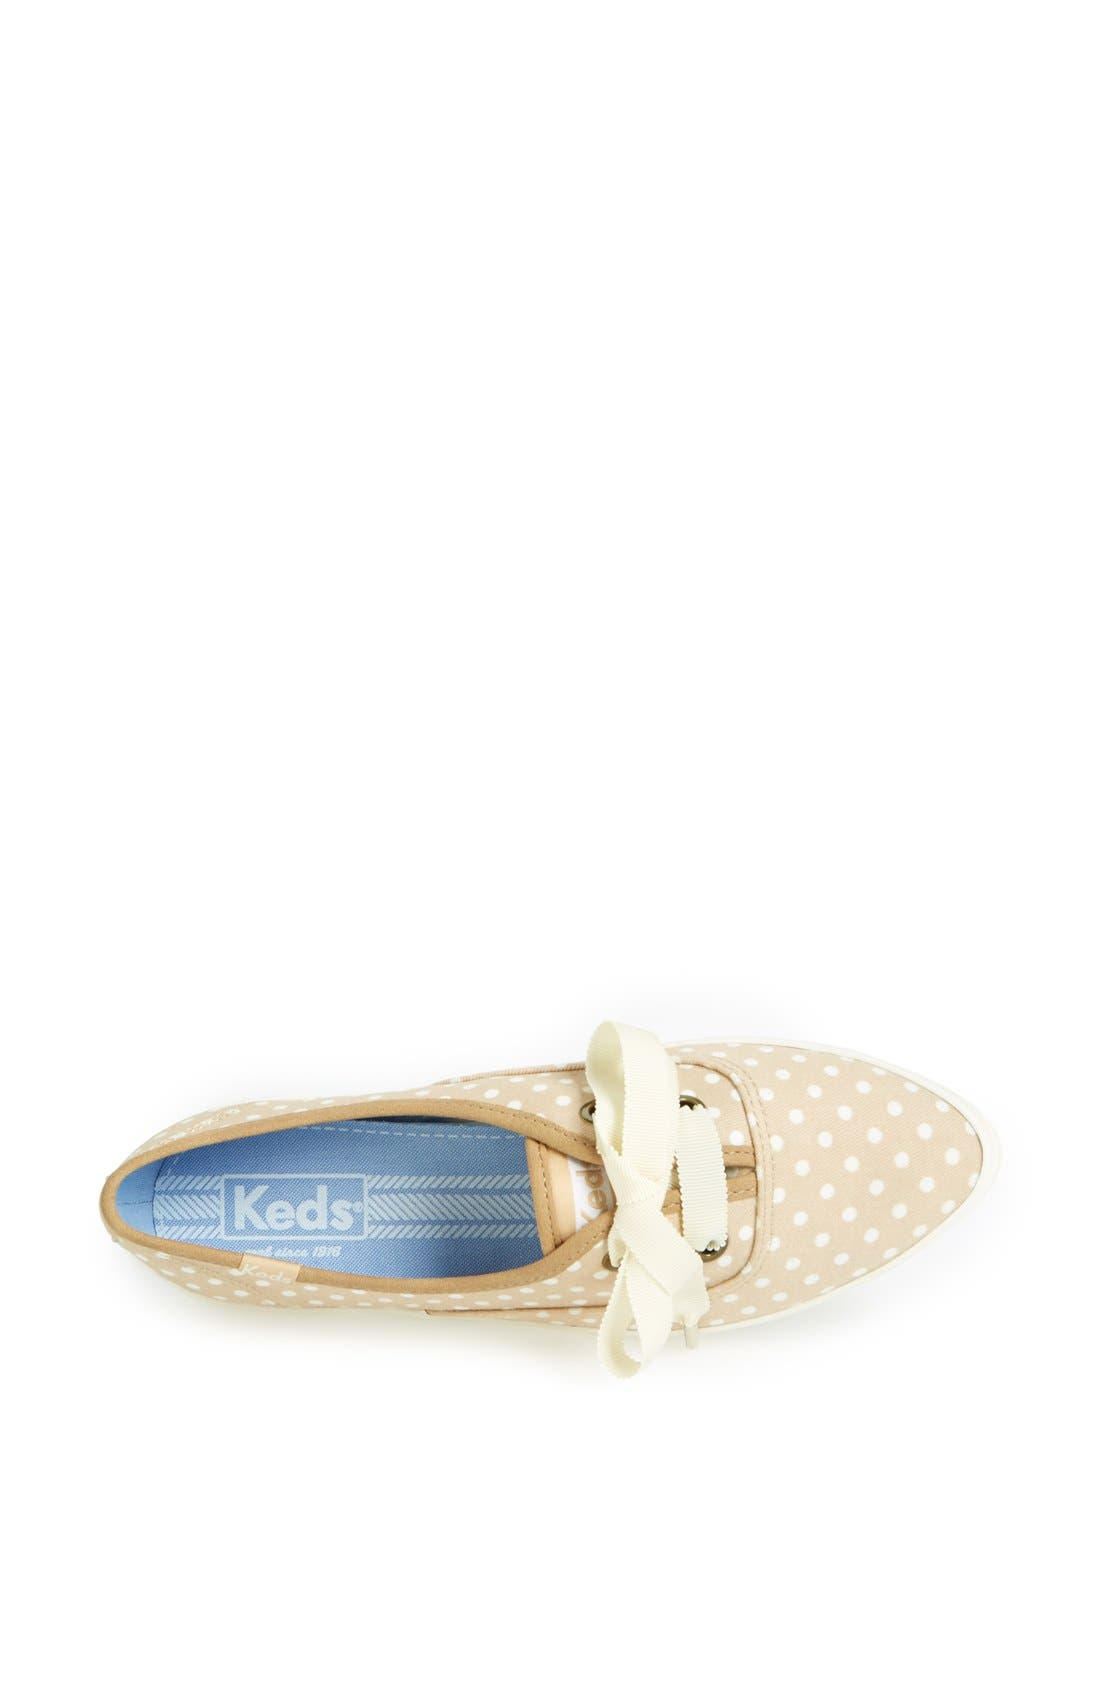 Alternate Image 3  - Keds® 'Pointer' Polka Dot Canvas Sneaker (Women)